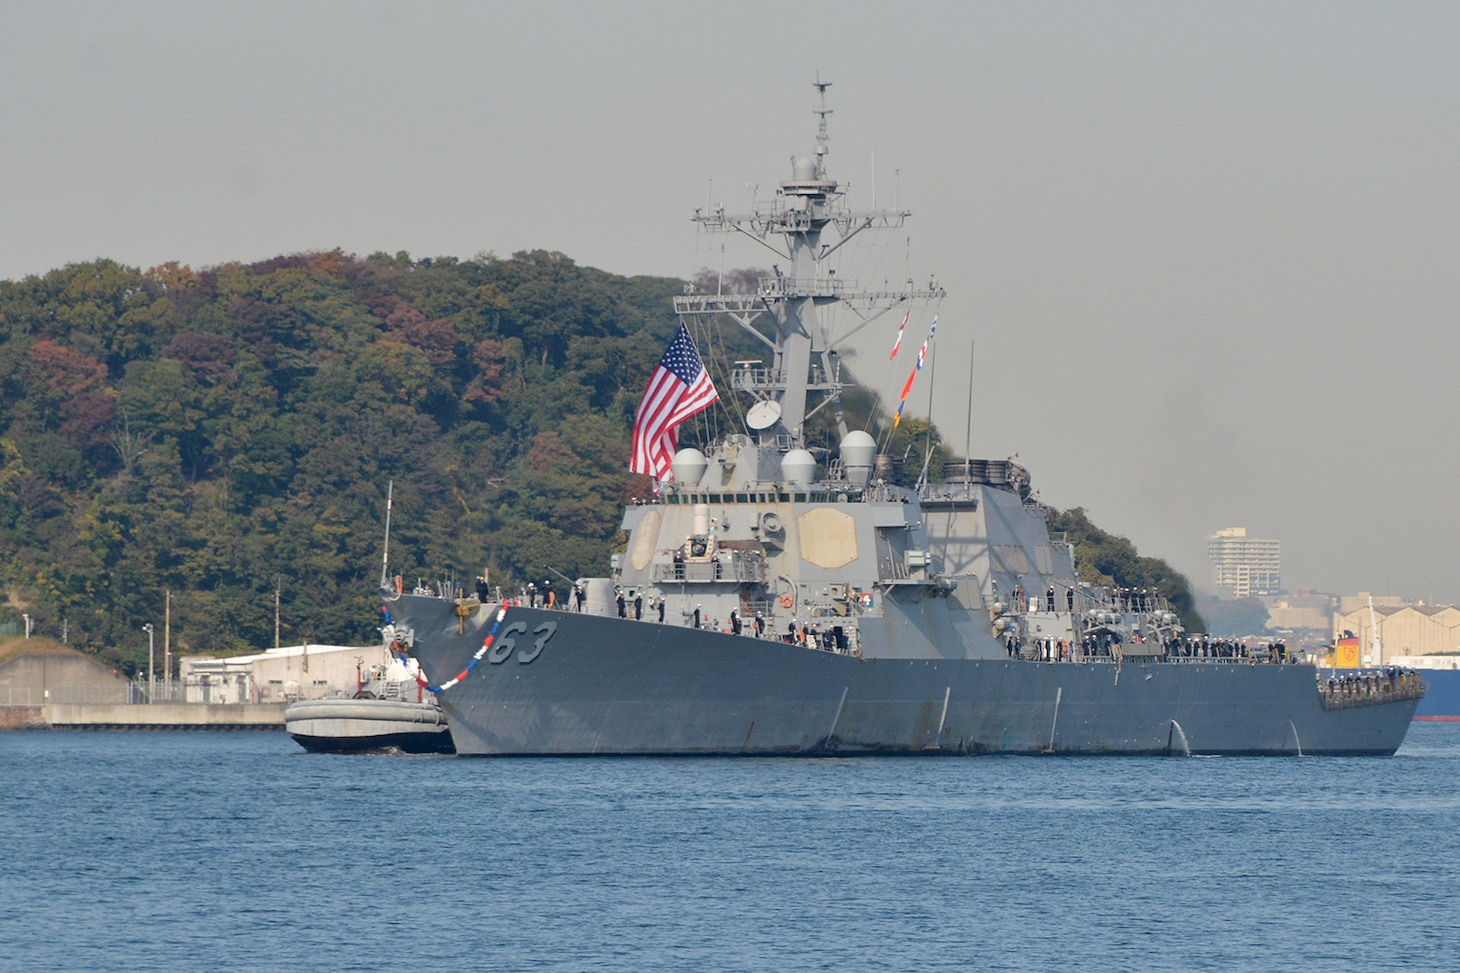 YOKOSUKA, Japan (Nov. 17, 2016) The Arleigh Burke-class guided-missile destroyer USS Stethem (DDG 63) returns to Fleet Activities (FLEACT) Yokosuka following its 2016 patrol. Stethem made a brief stop at FLEACT Sasebo to pick up family members for a Tiger Cruise. FLEACT Yokosuka provides, maintains, and operates base facilities and services in support of 7th Fleet's forward-deployed naval forces, 83 tenant commands, and 24,000 military and civilian personnel.